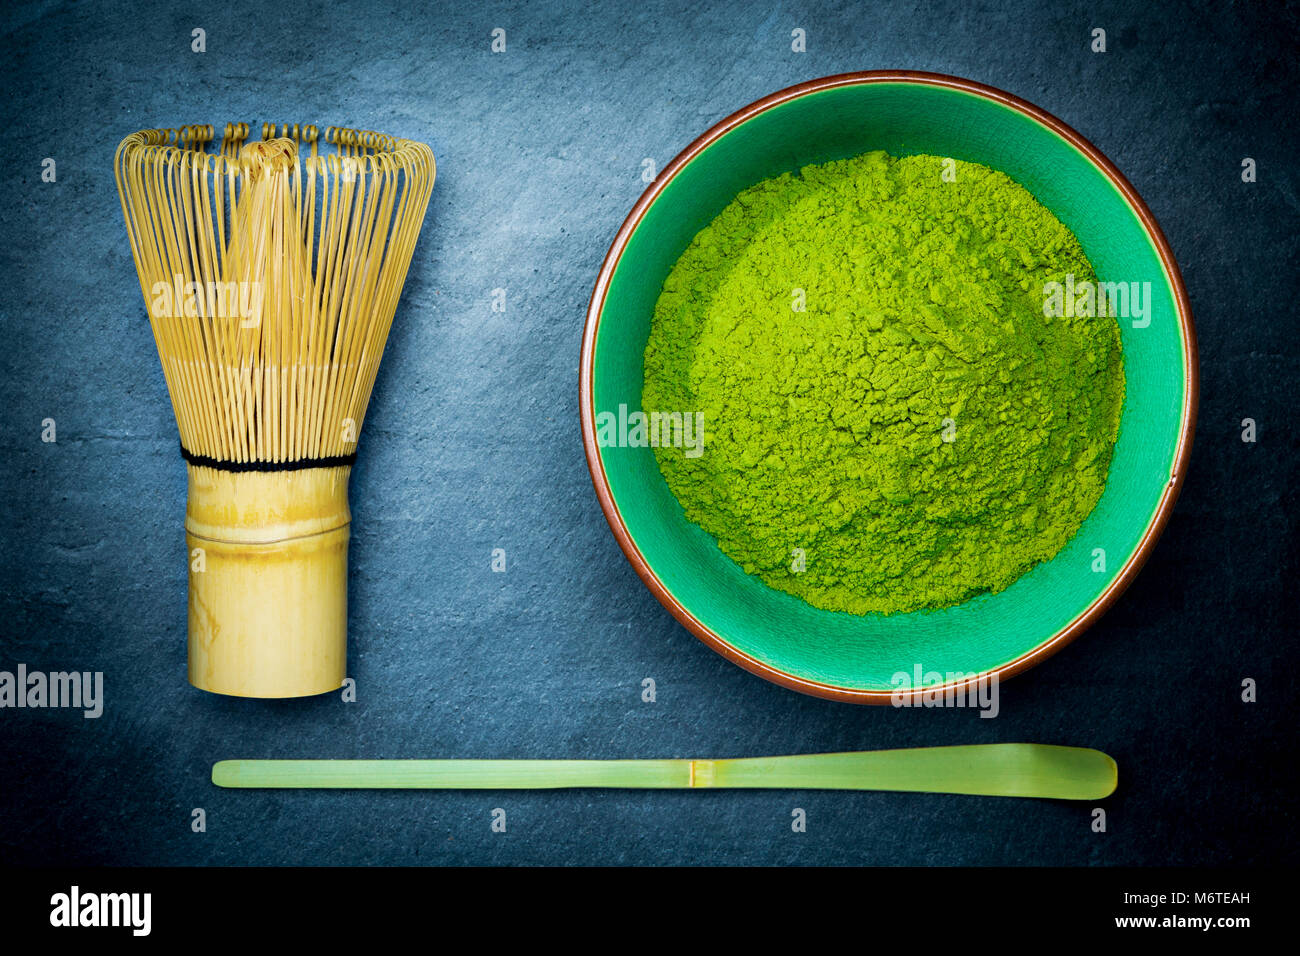 Matcha green tea powder in a bowl with bamboo whisk and spoon on dark slate background. - Stock Image